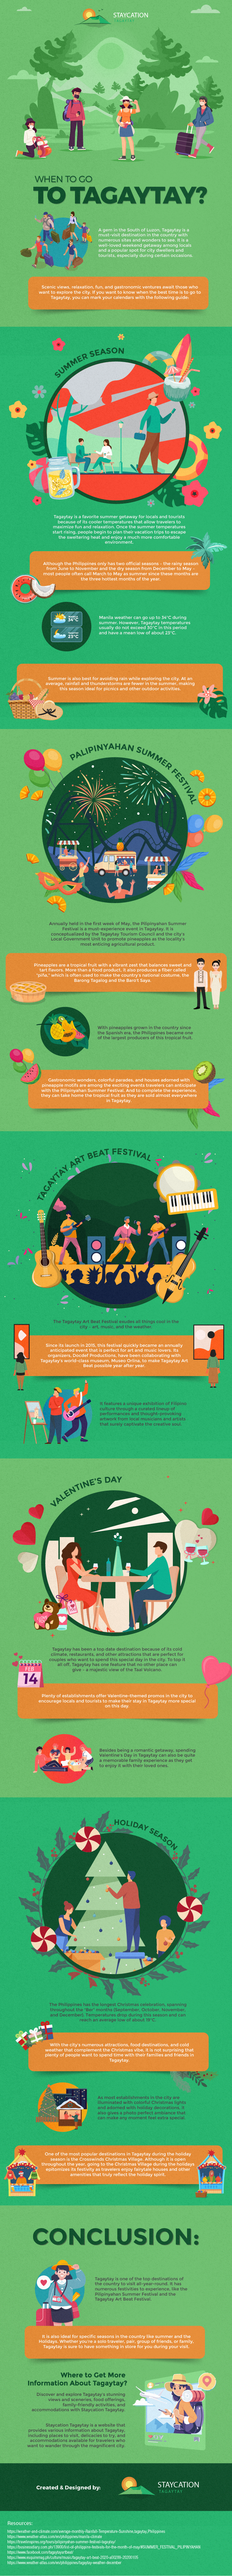 When to go to Tagaytay? - Infographic